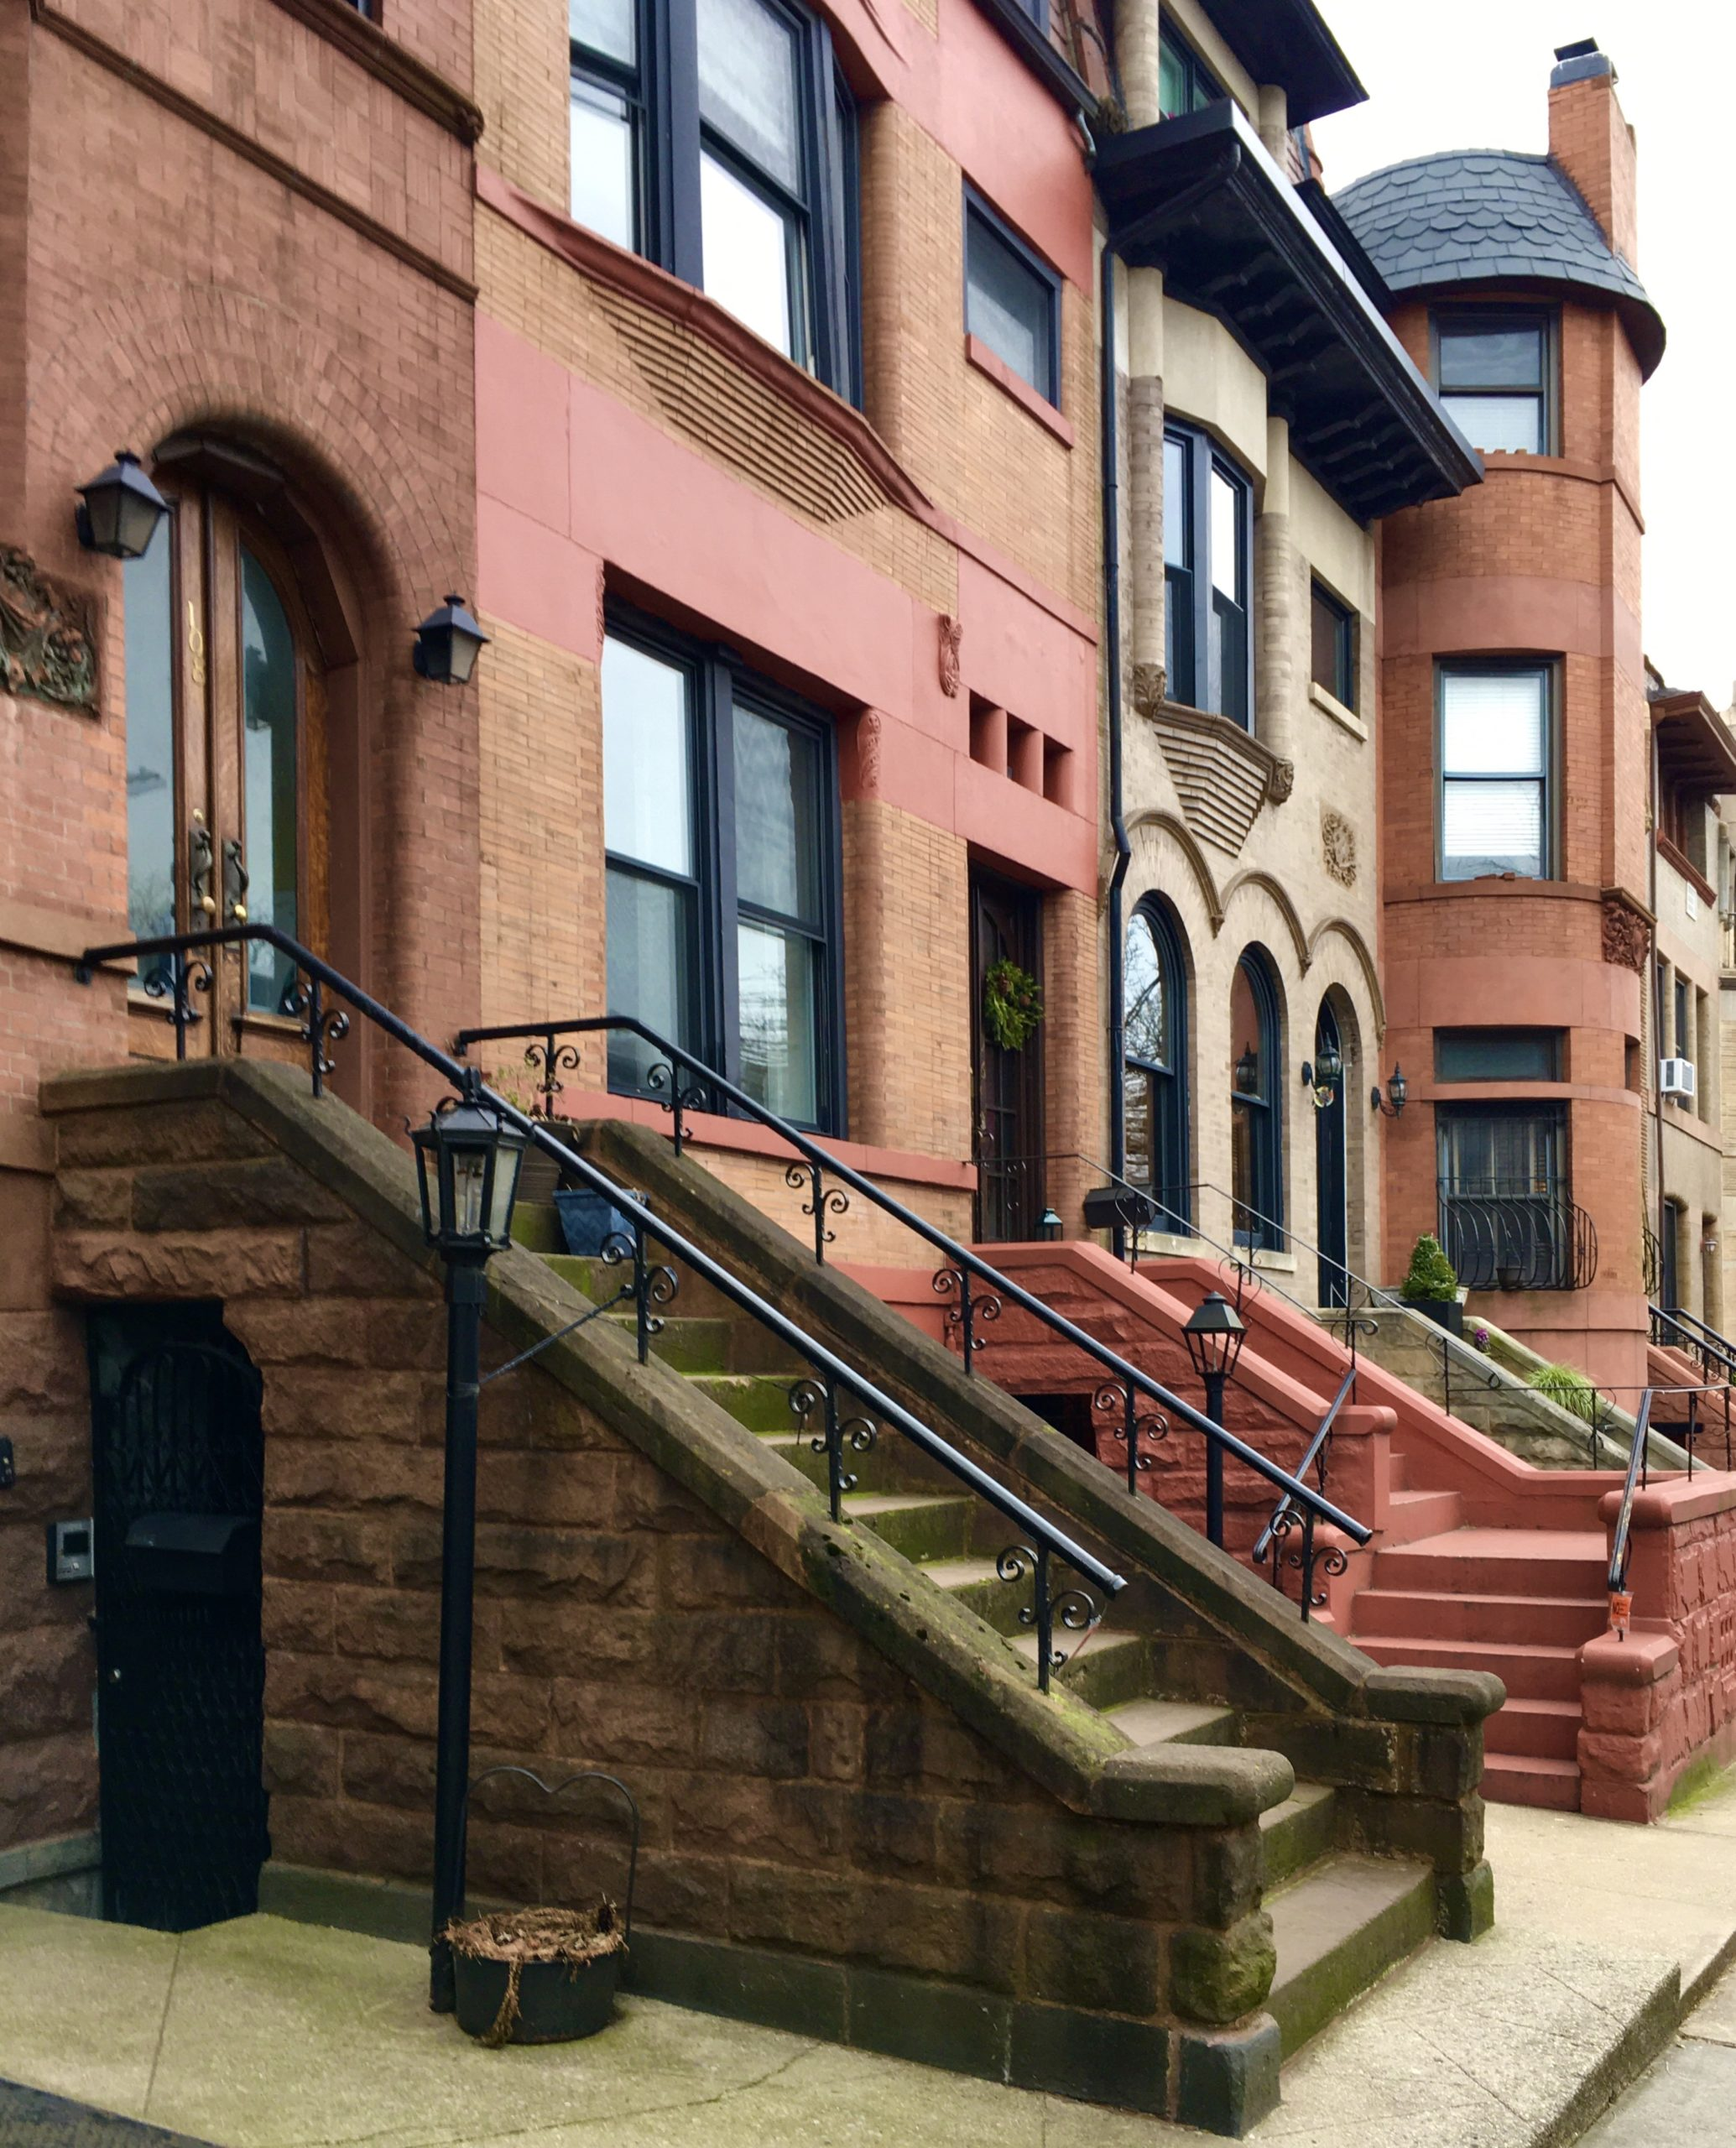 Architecture firm Langston and Dahlander designed these Garfield Place residences. Photo: Lore Croghan/Brooklyn Eagle